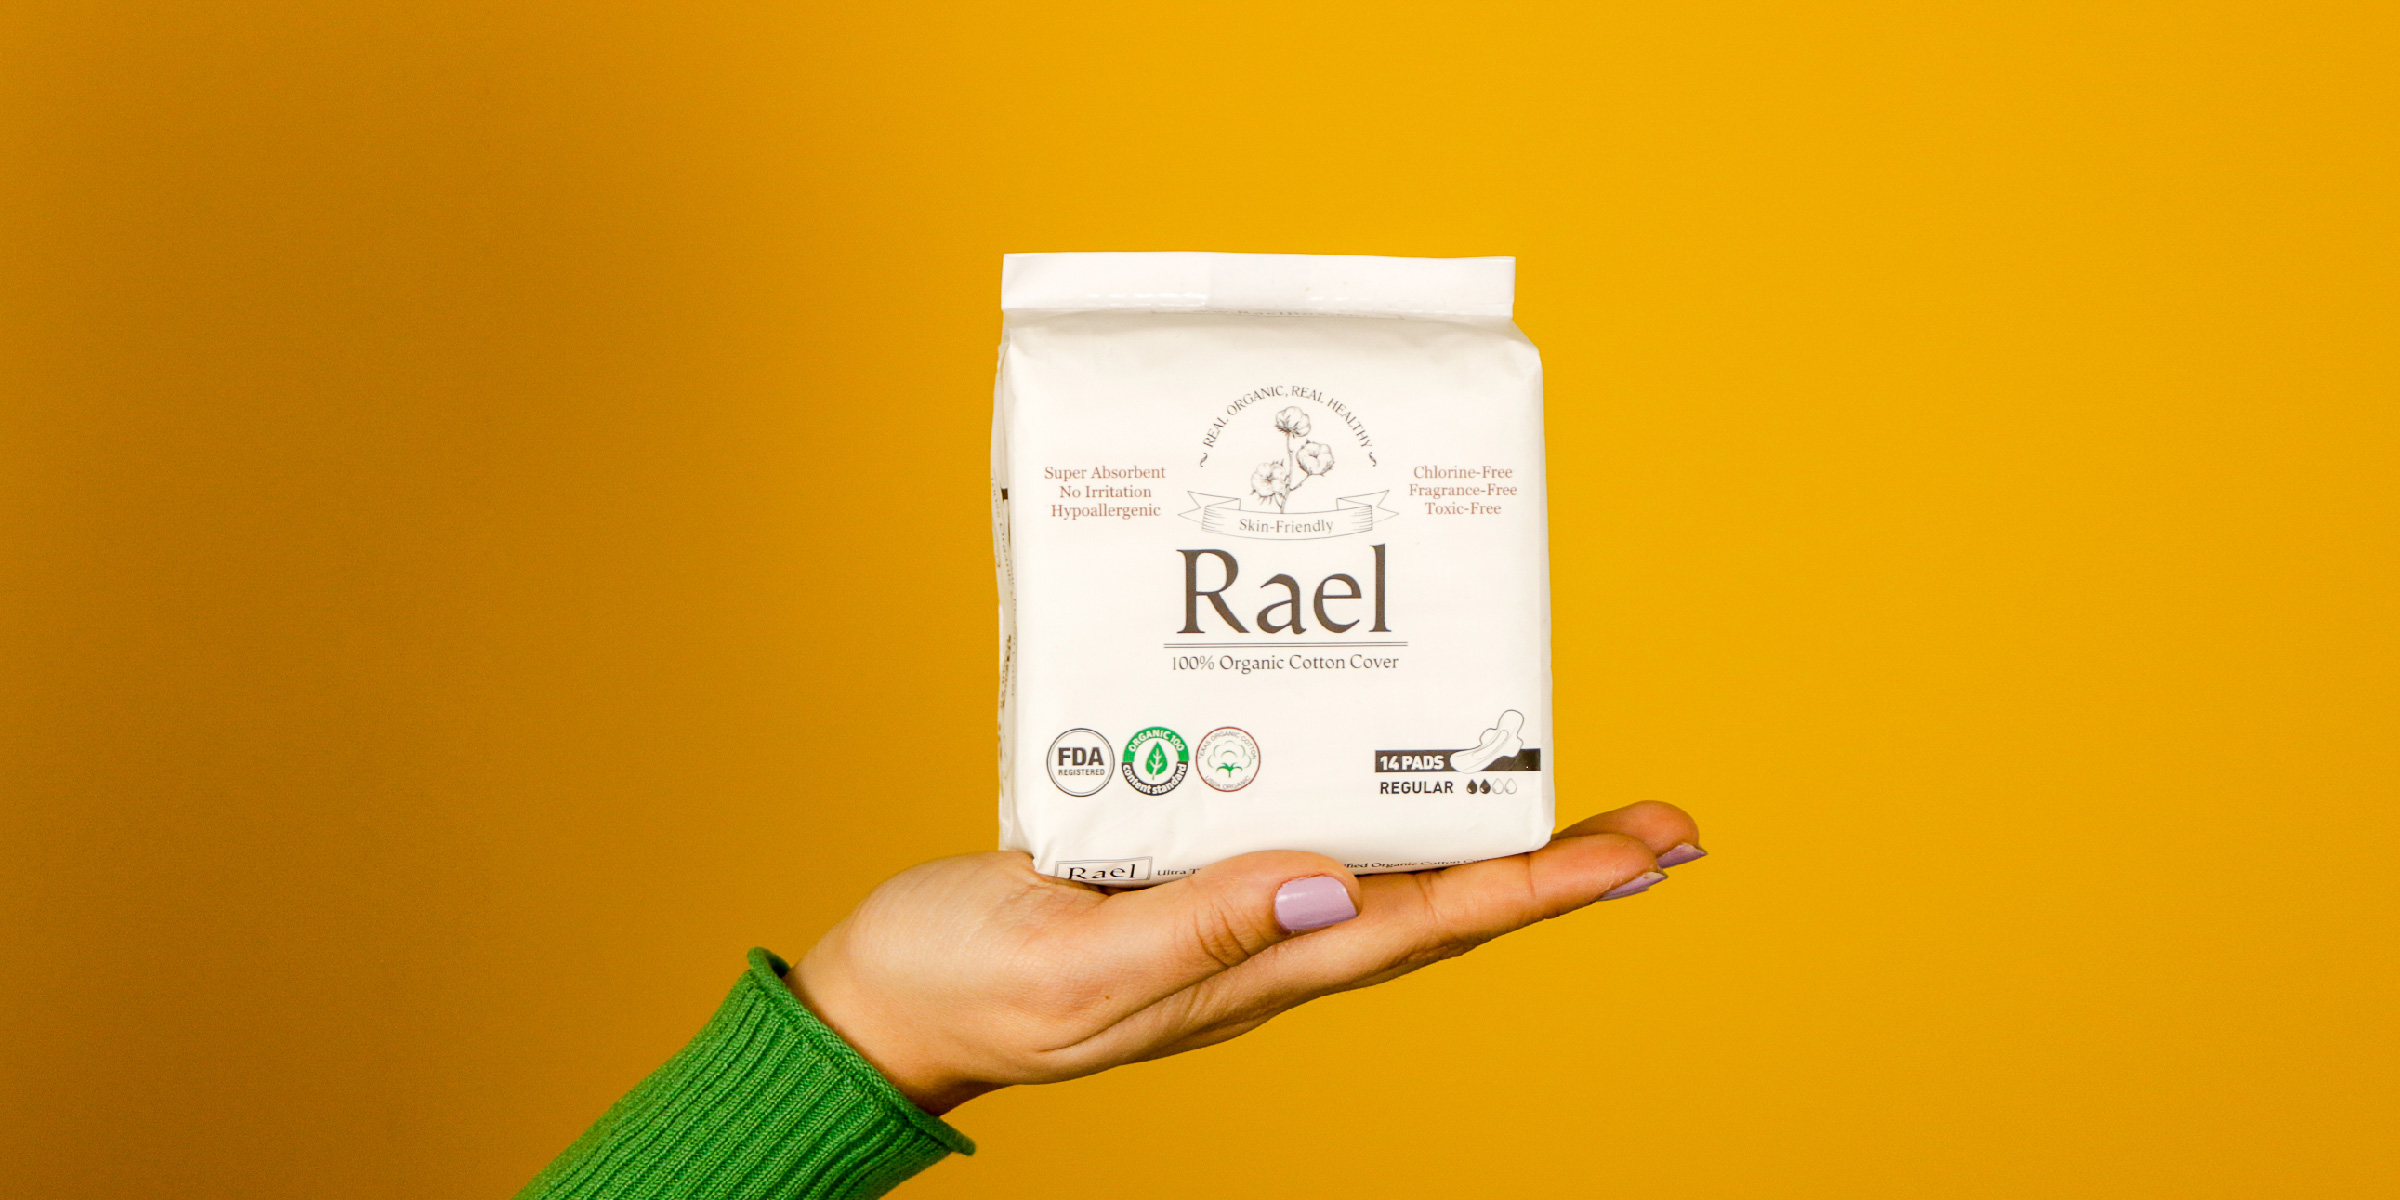 Rael Disposable Pads Review contenful inside@2x-80